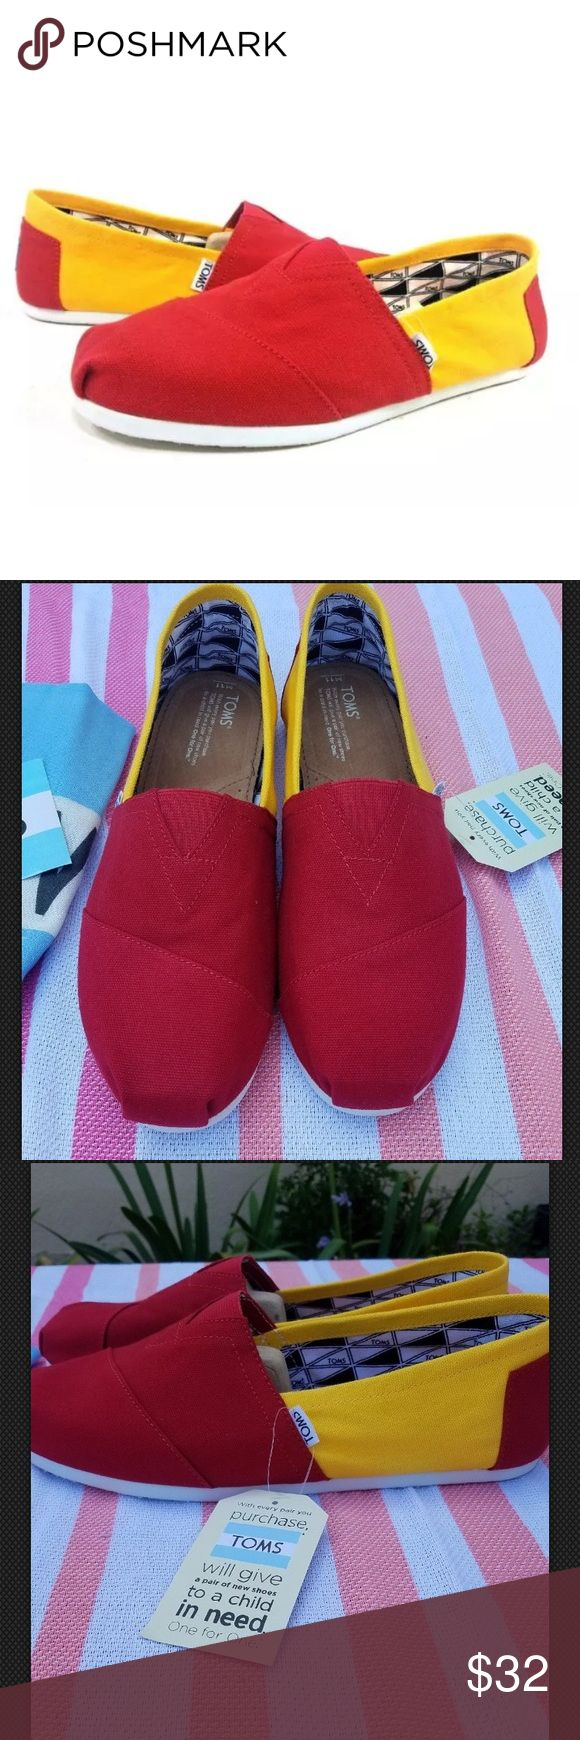 "Toms Men's Campus Classics USC Slip ons Toms Men's Campus Classics USC Slip ons      Color yellow/red  Size 11   New with out box.  Store display model. With out box, dust bag included. See all photos.      width 3 1/2"" sole length 11 1/2"" insole length 11 1/2""      	•	Imported